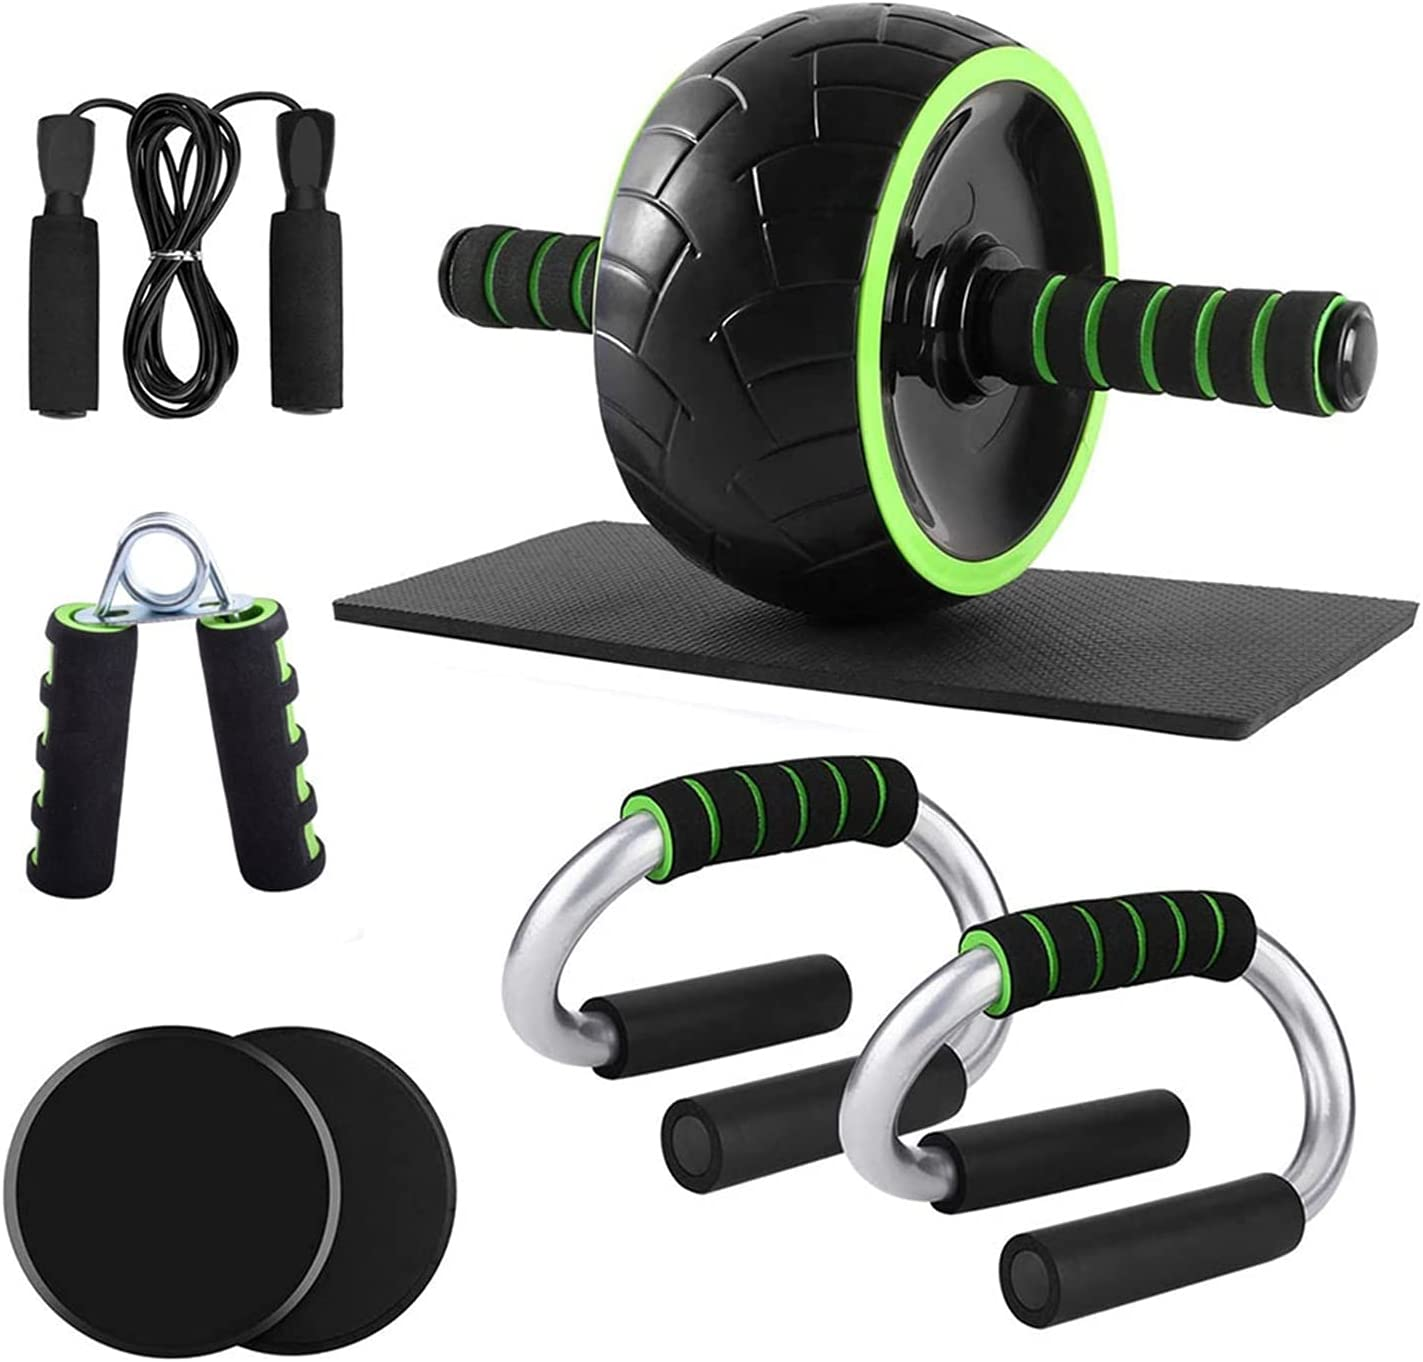 EFDW AB Wheel Roller Set 6-in-1 with Push Up Bars Gliding Discs